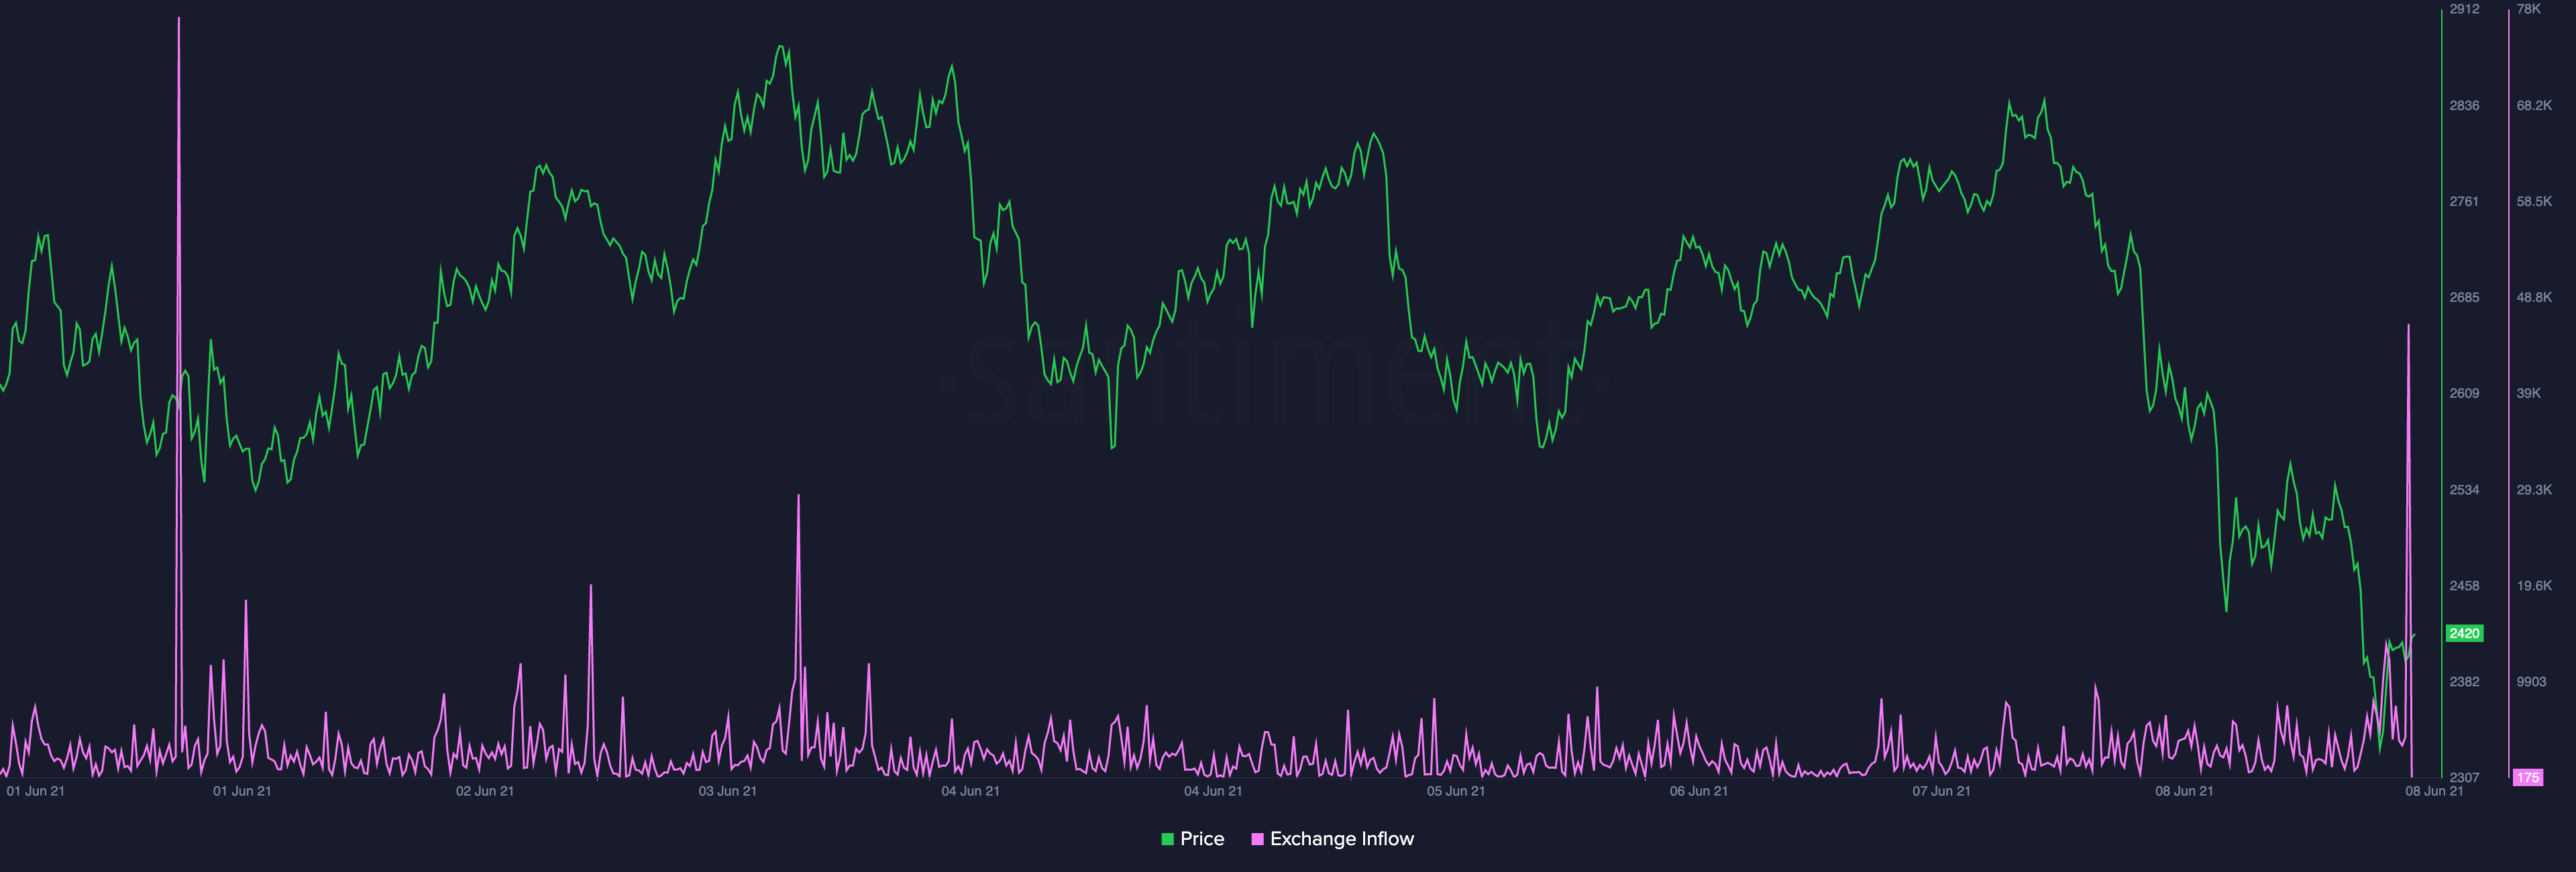 Ethereum Price Can Correct Further As Per Exchange Inflow and Social Sentiment Data